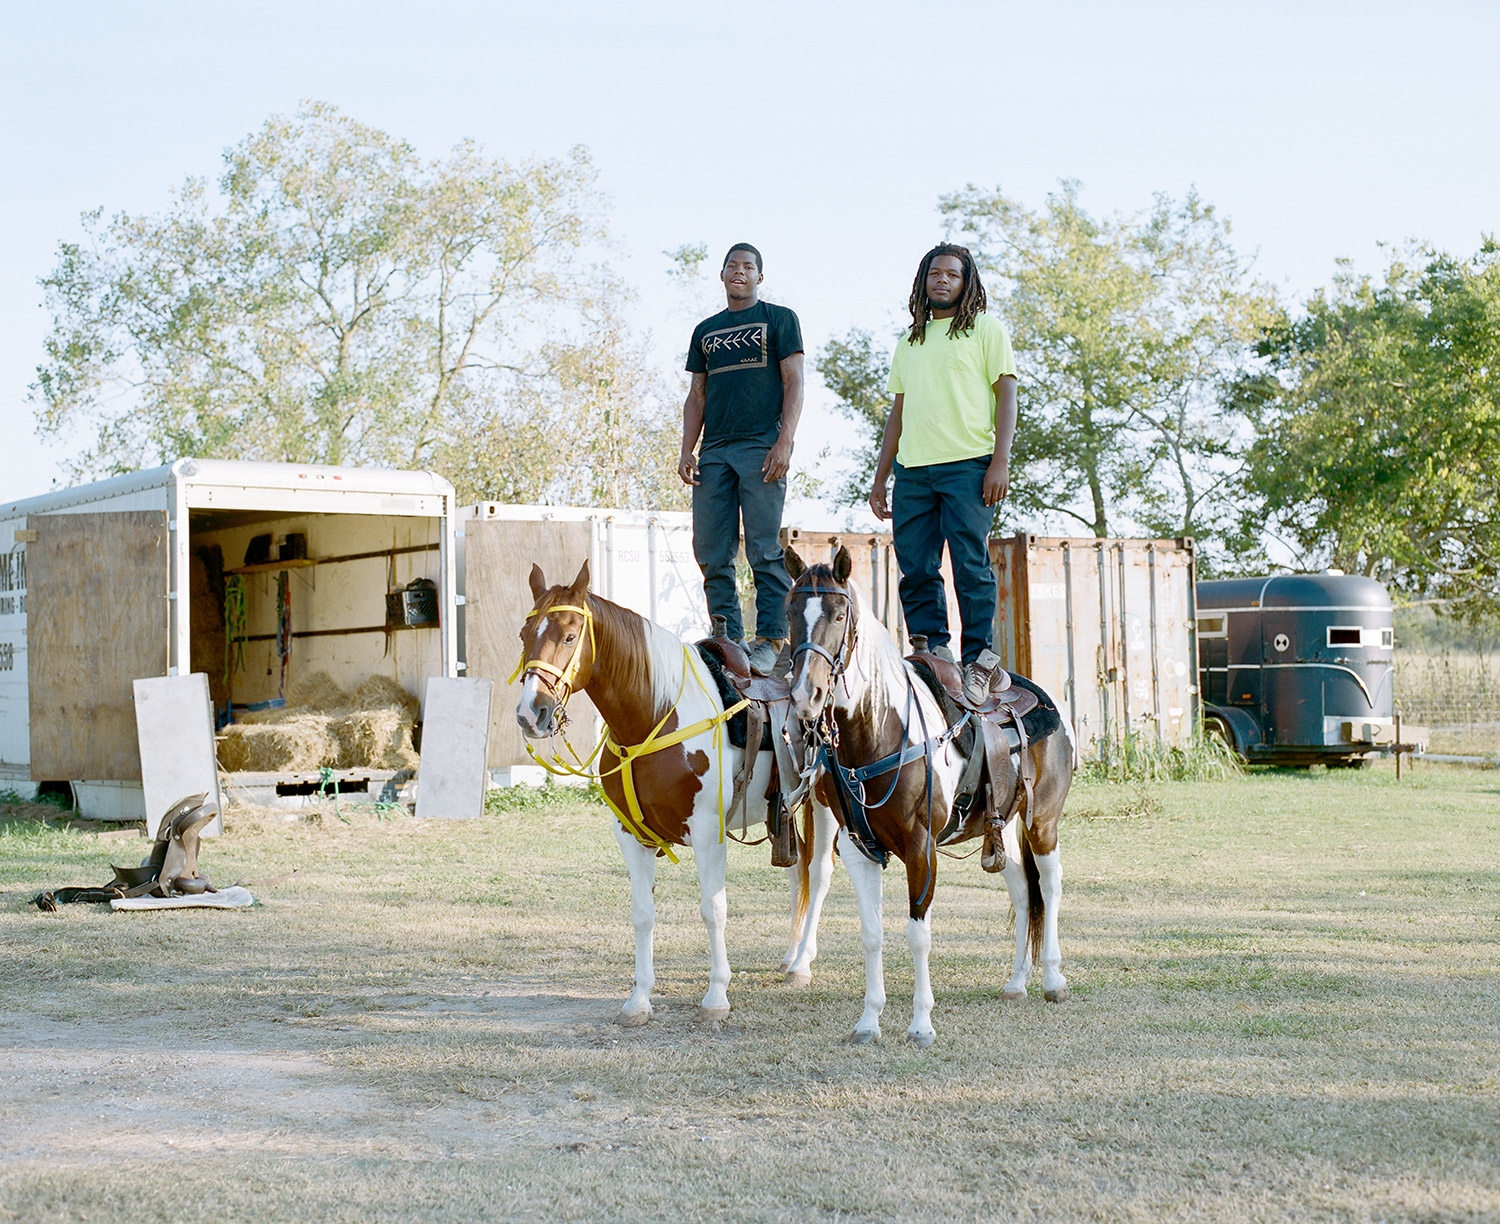 Devence and Dwayne balance on their horses. 2014